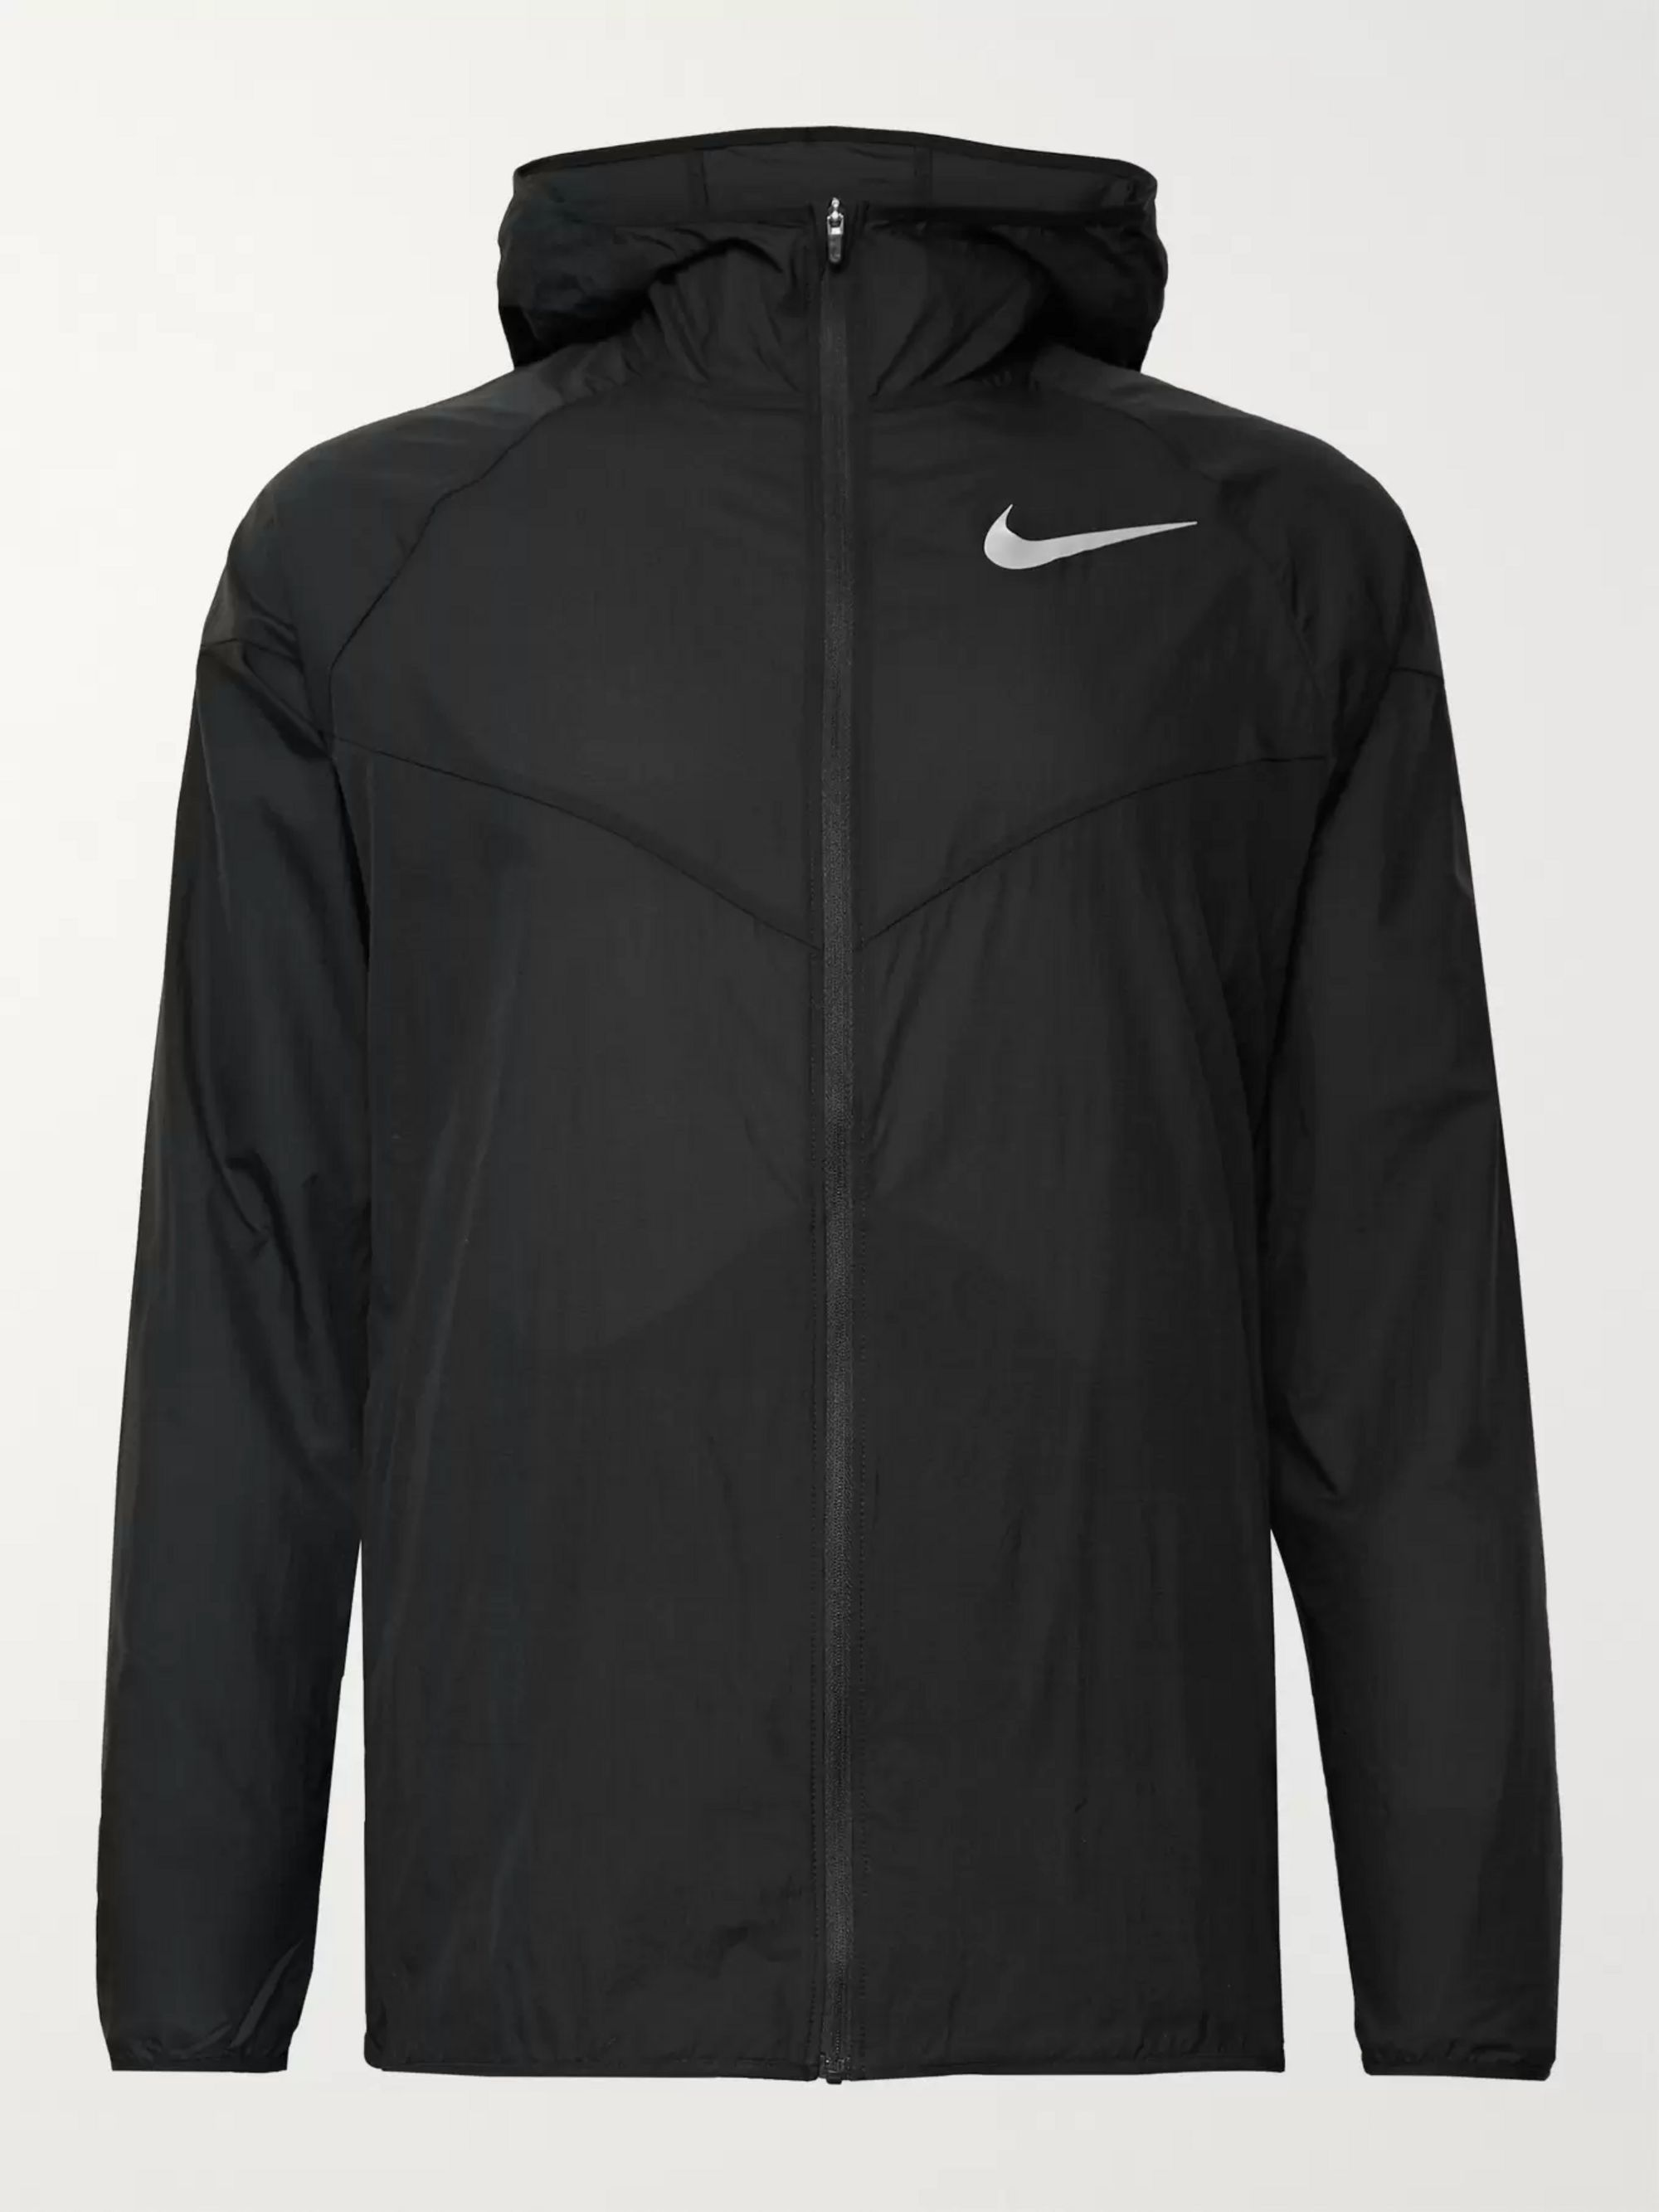 Nike Windrunner Water Repellent Hooded Jacket available at